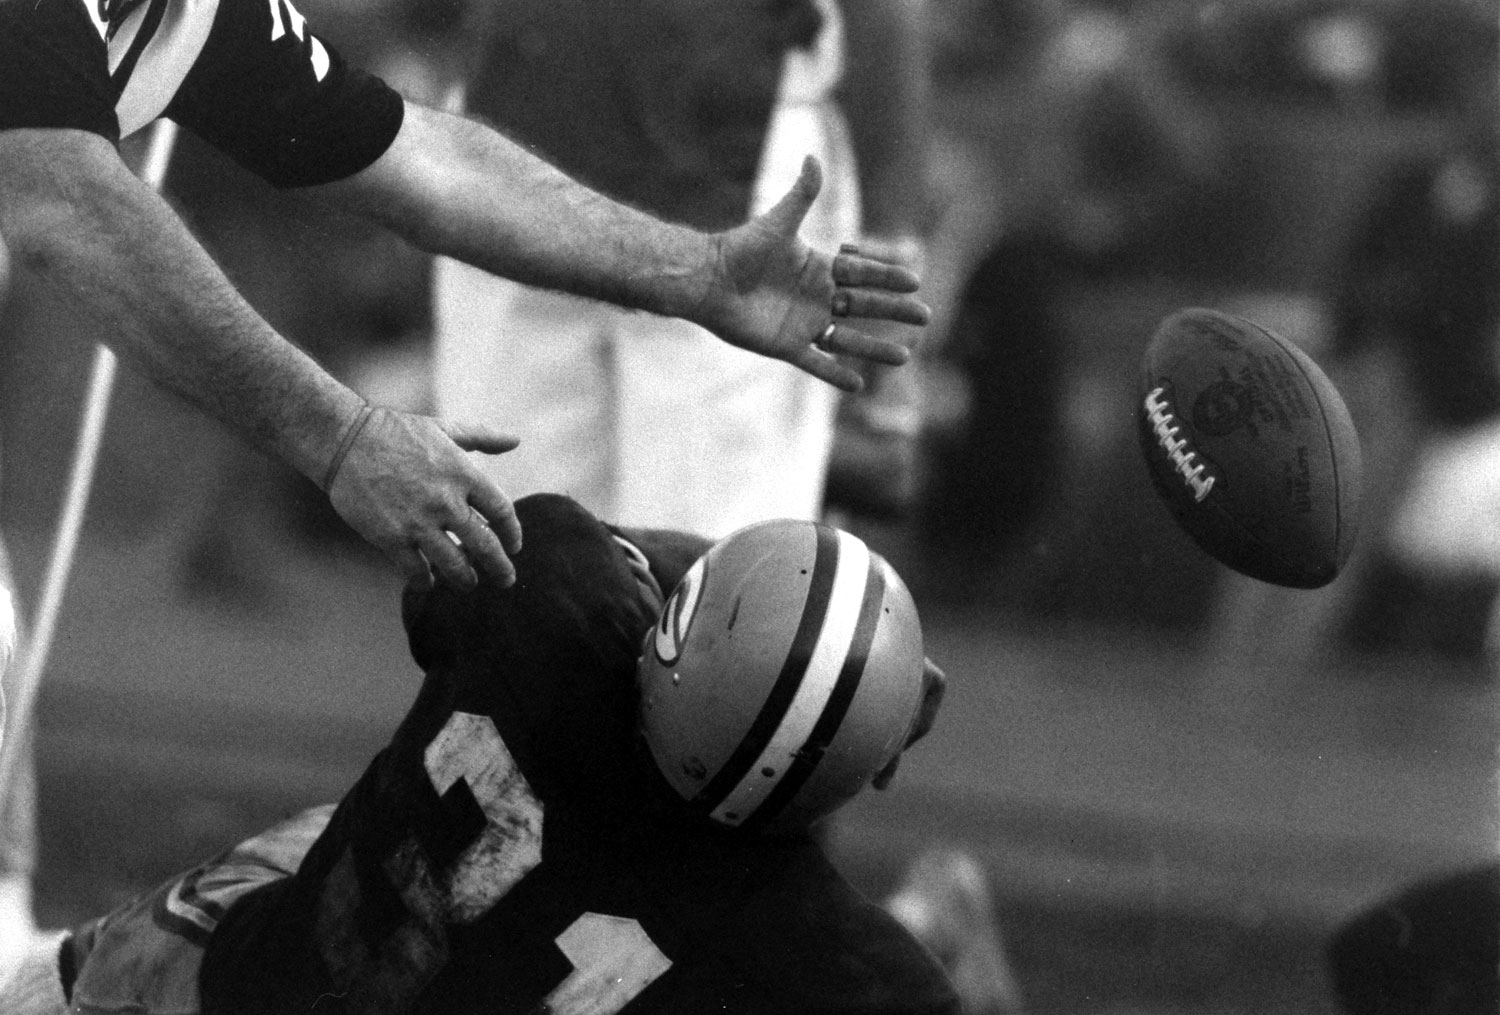 <b>Not published in LIFE.</b> Green Bay's Jim Taylor (#31), Super Bowl I, 1967.